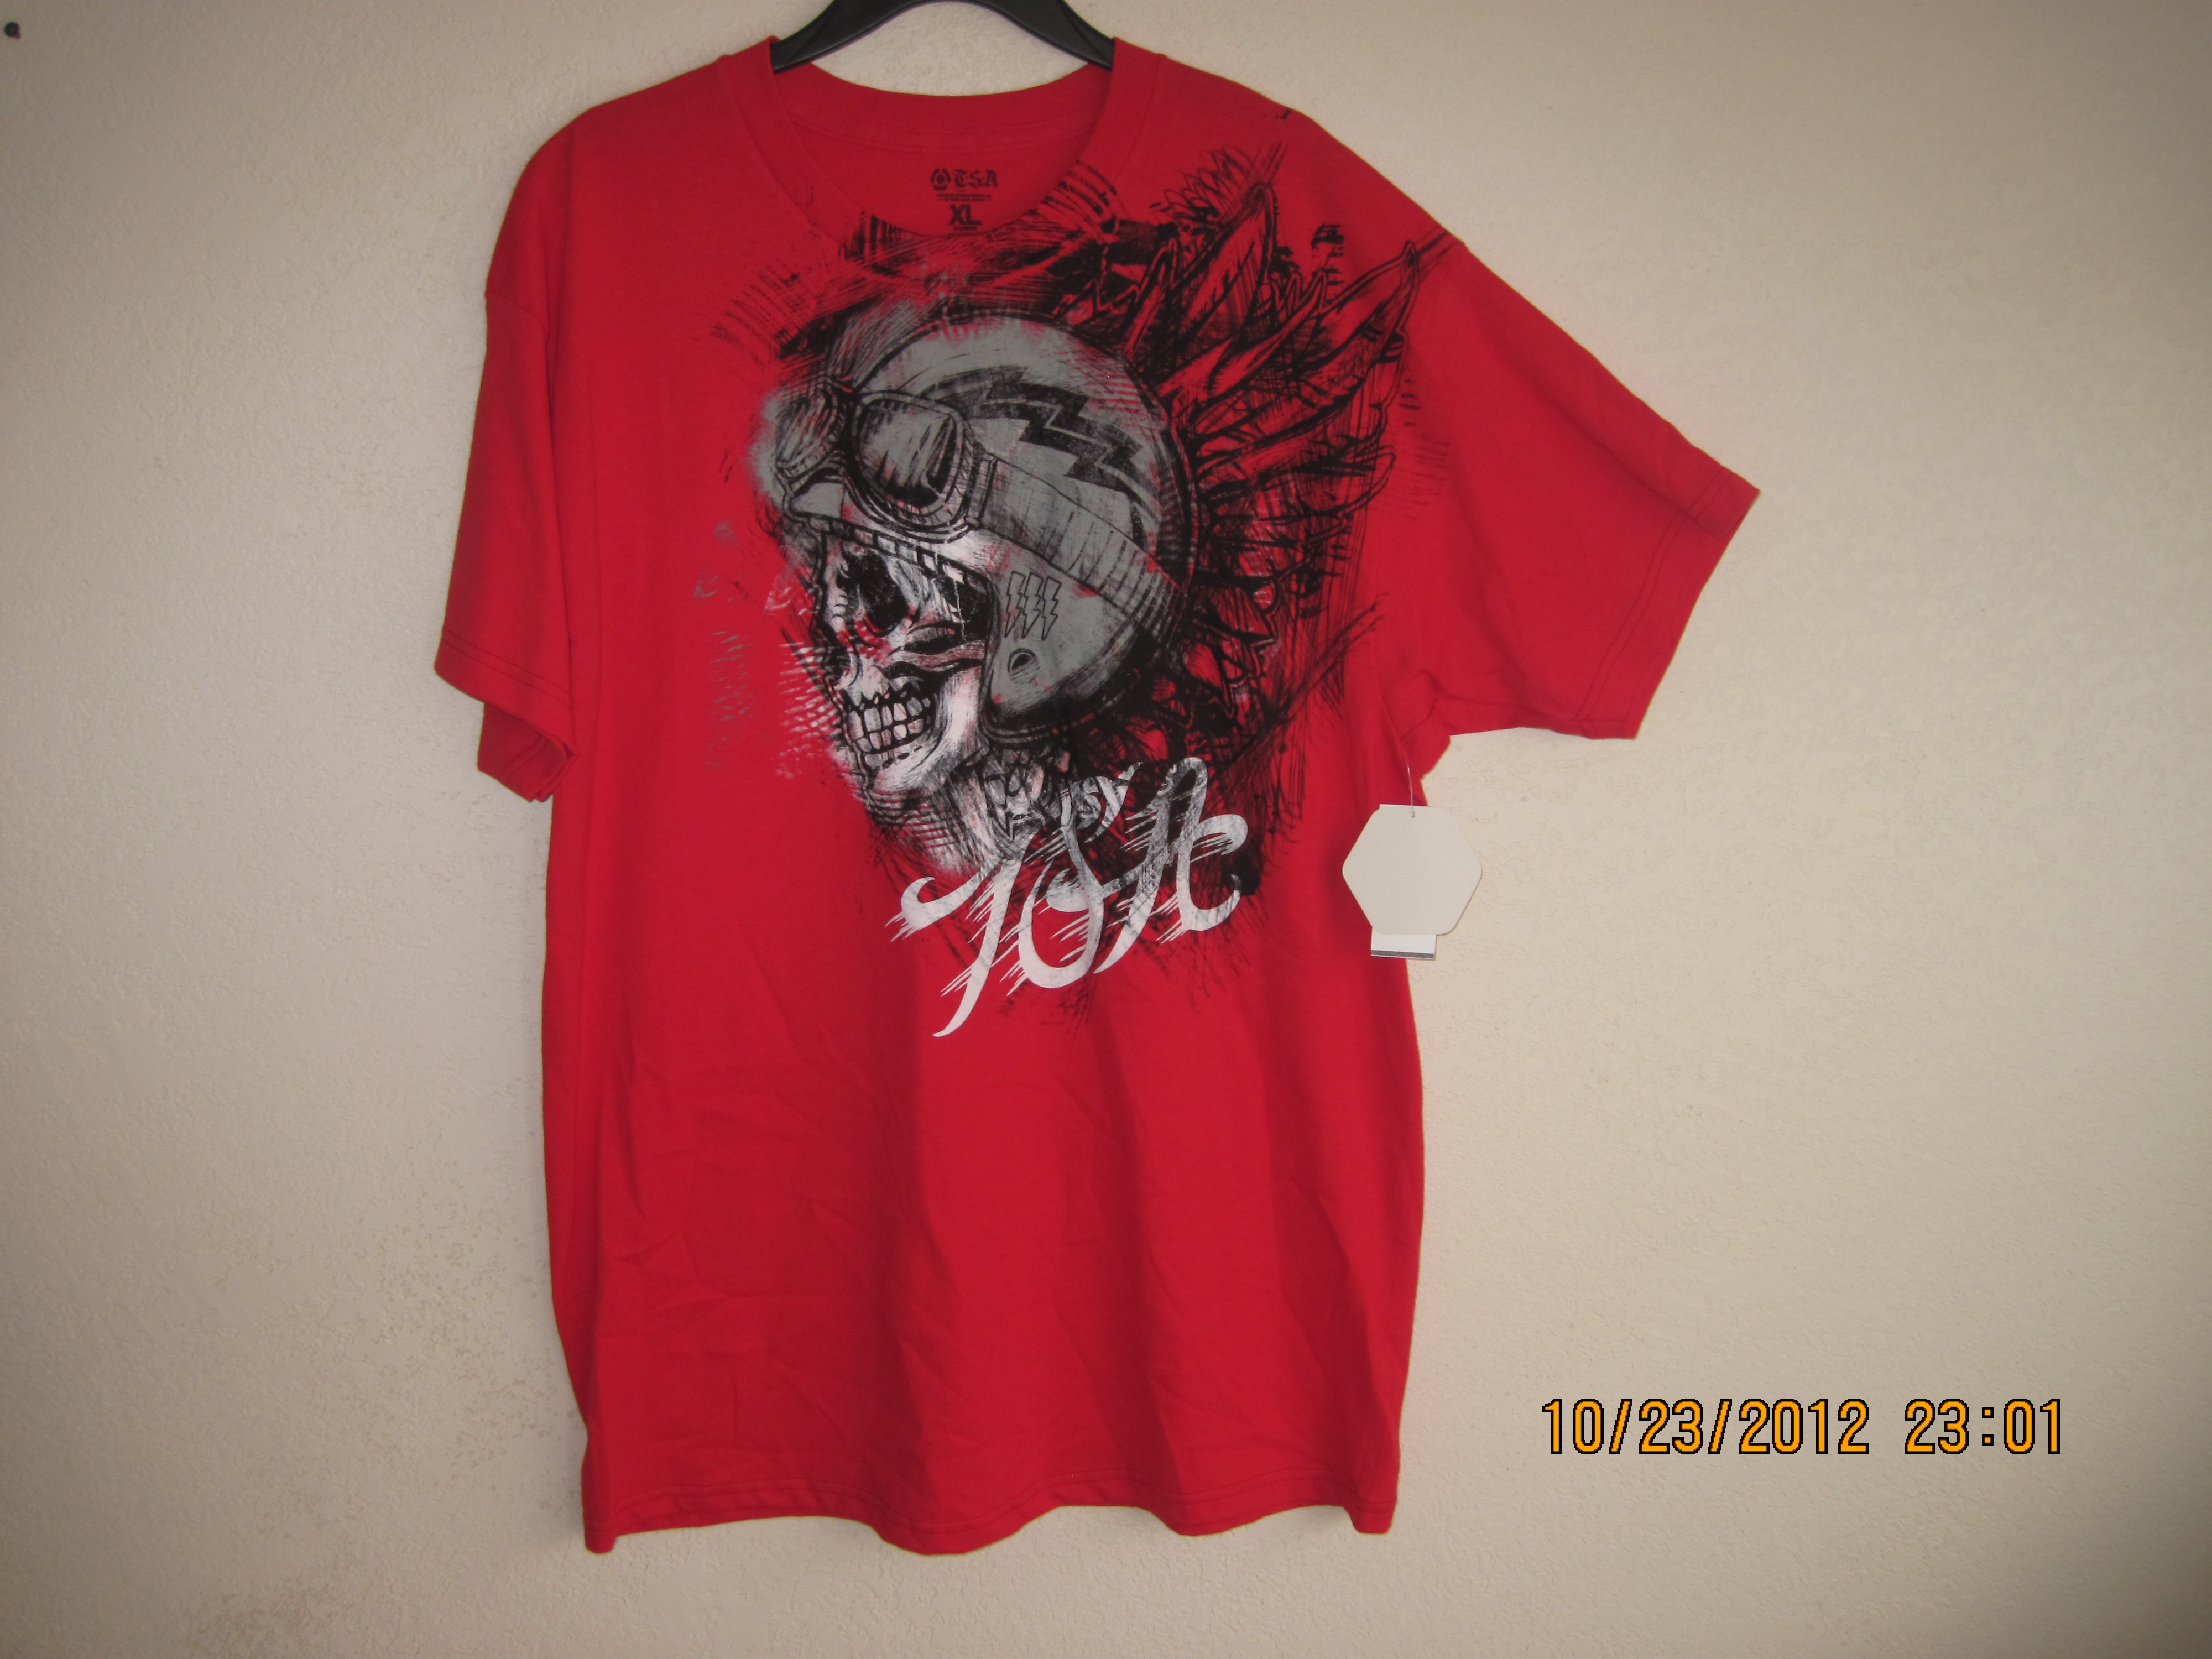 T.S.A MX SzM T-shirt with a Skull on Front (Red)